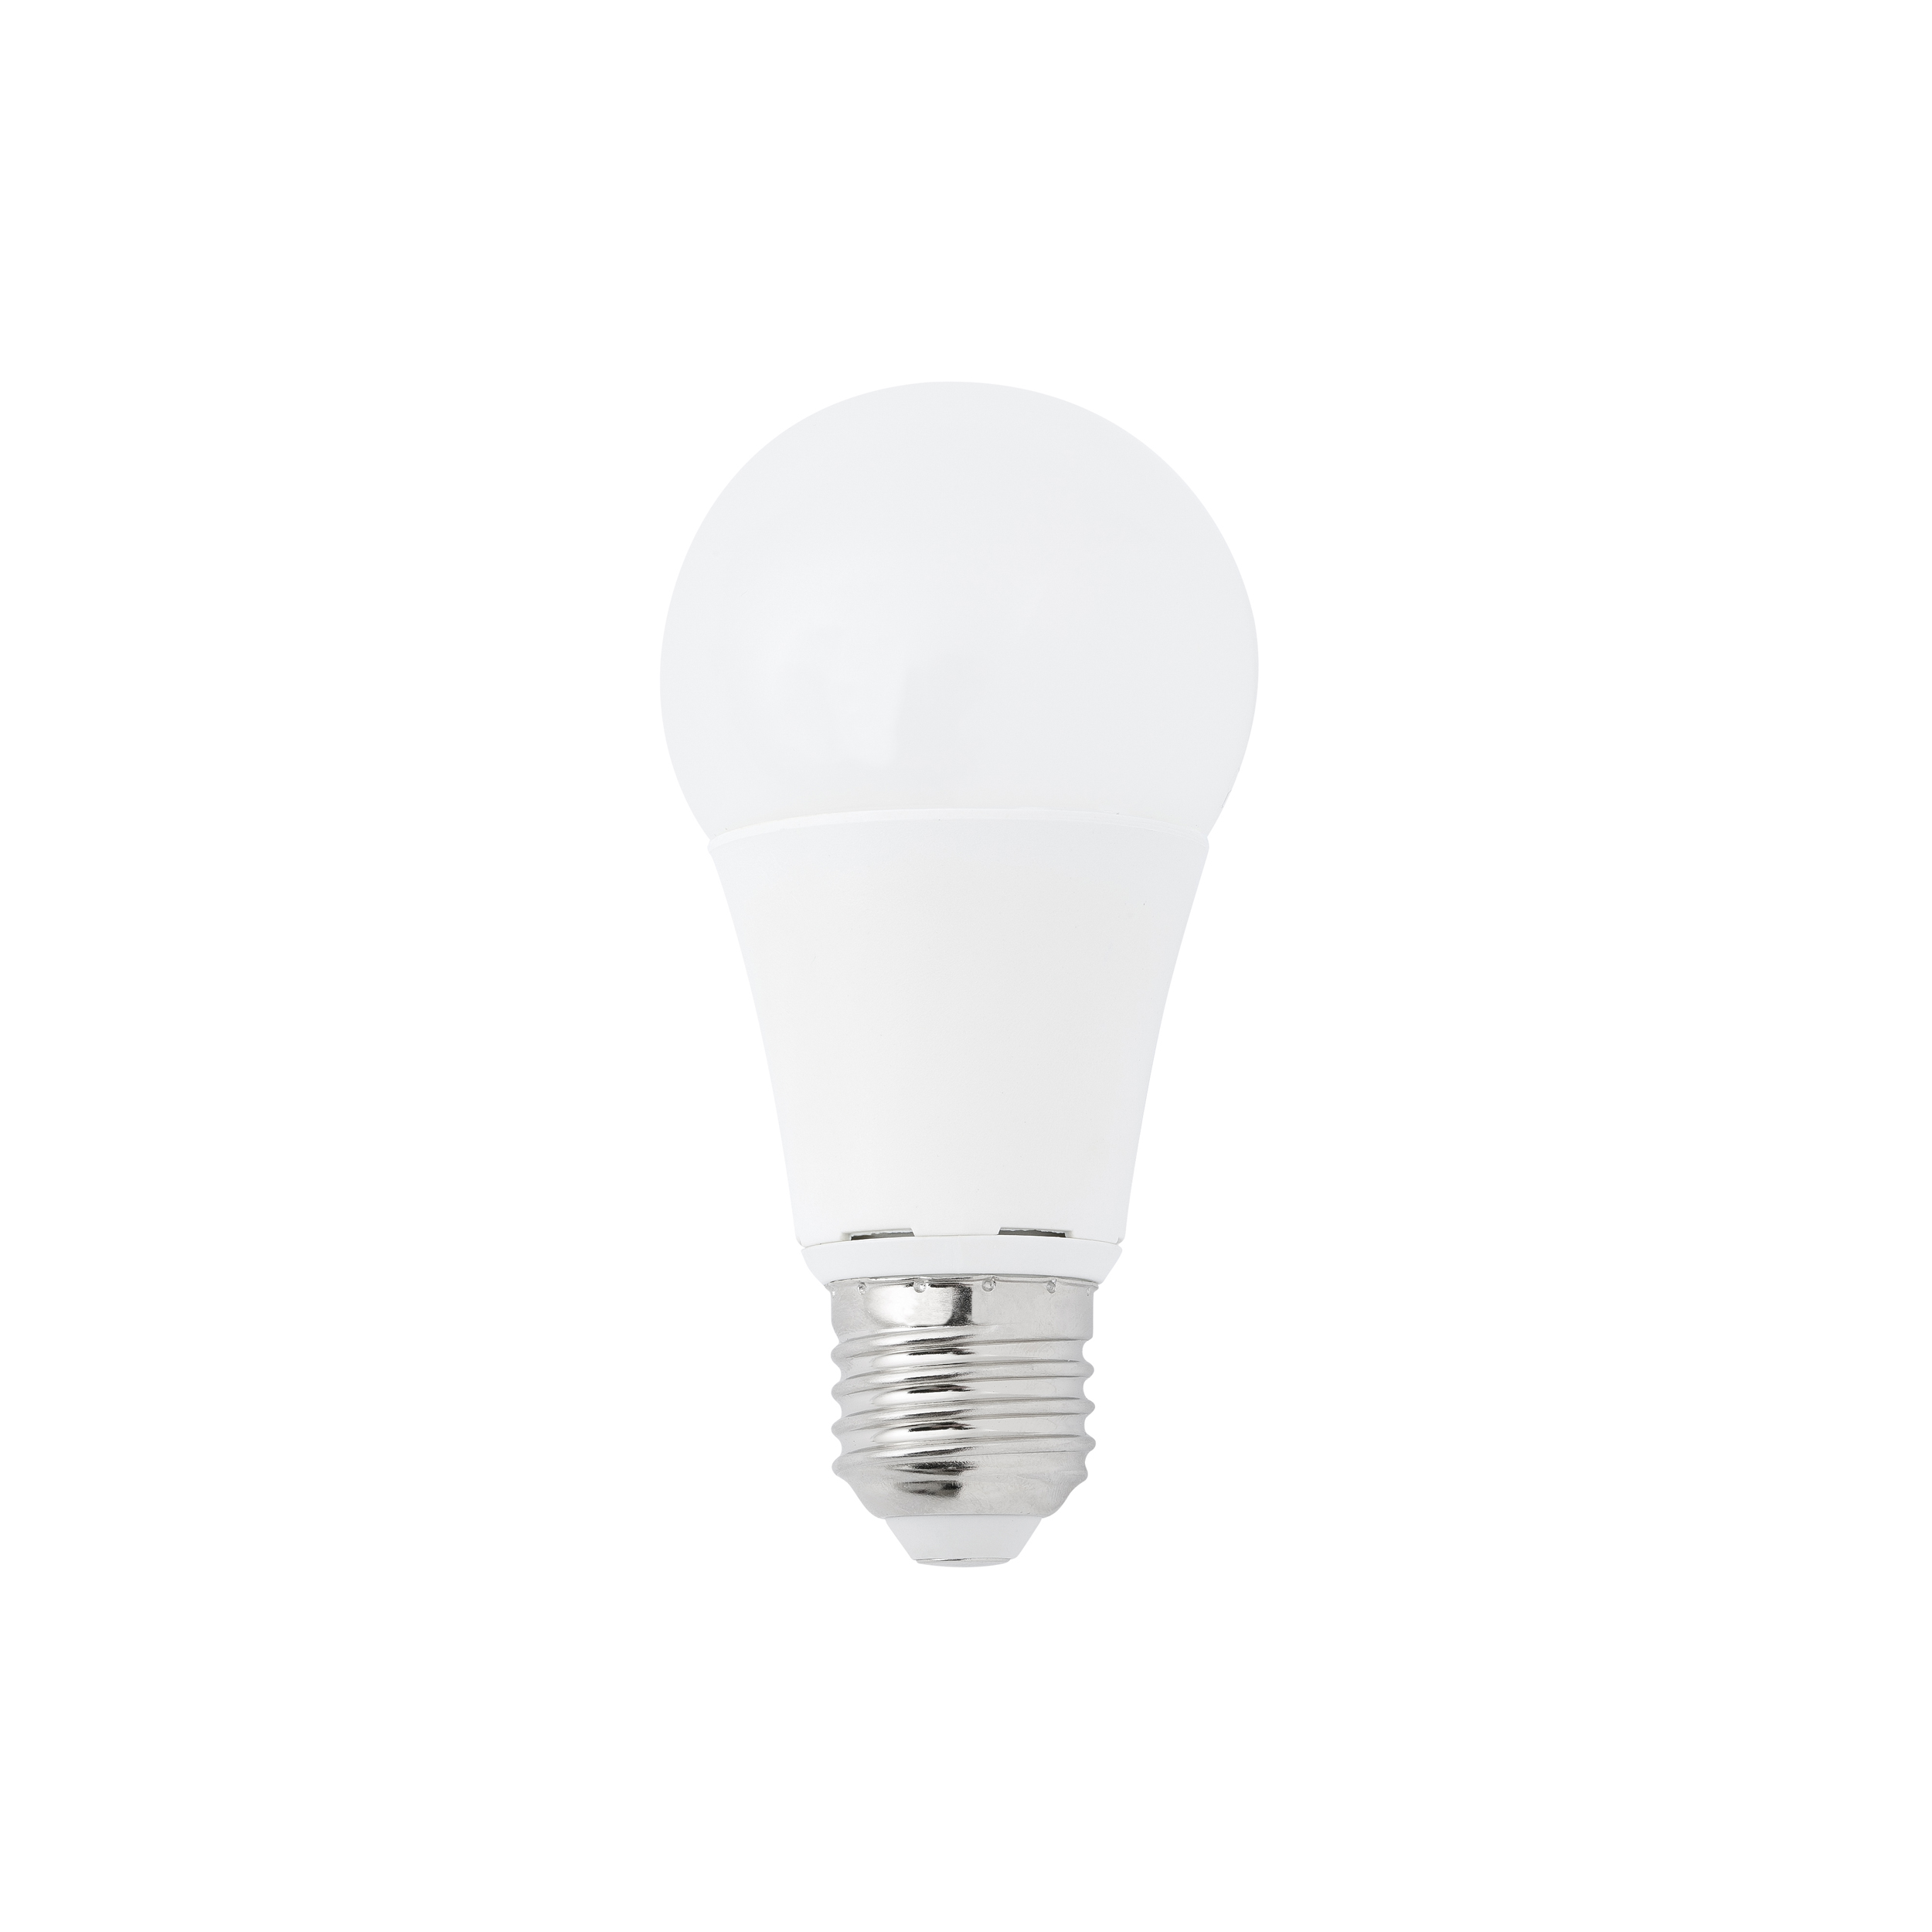 Bulb E27 Mat Led 10w Dimmable 2700k Ø6cm H12cm Nedgis Lighting